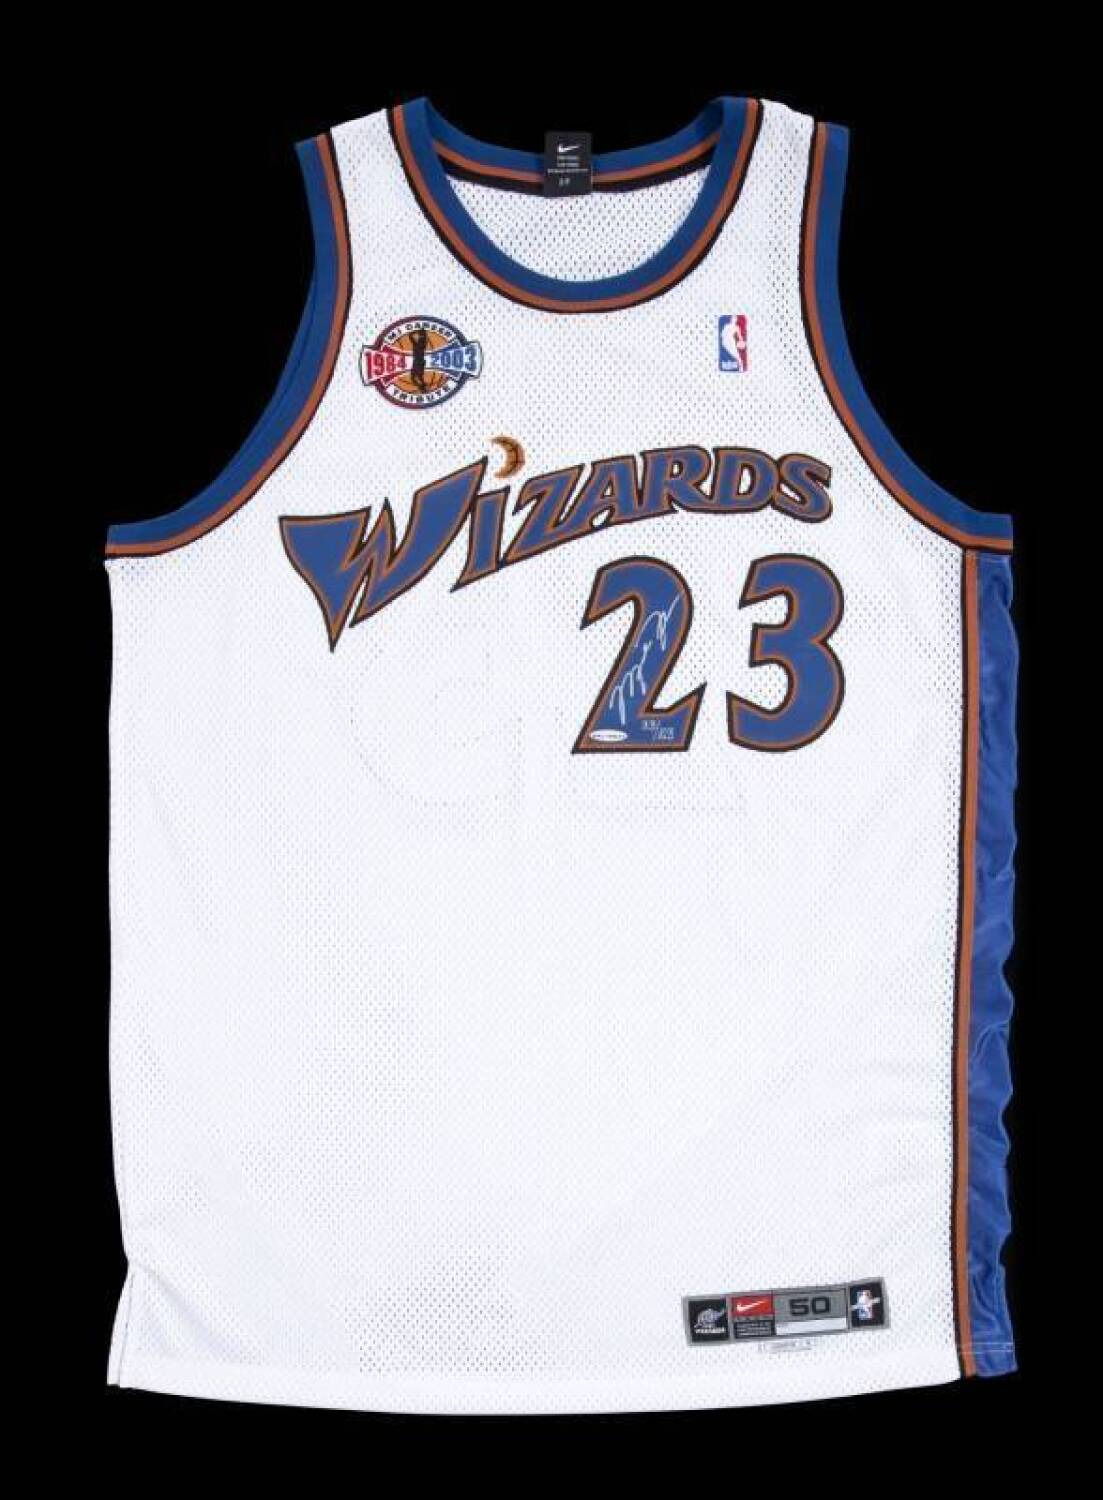 a8e5bbe17799 ... usa michael jordan signed limited edition mj career tribute washington  wizards jersey current price 500 25c9e